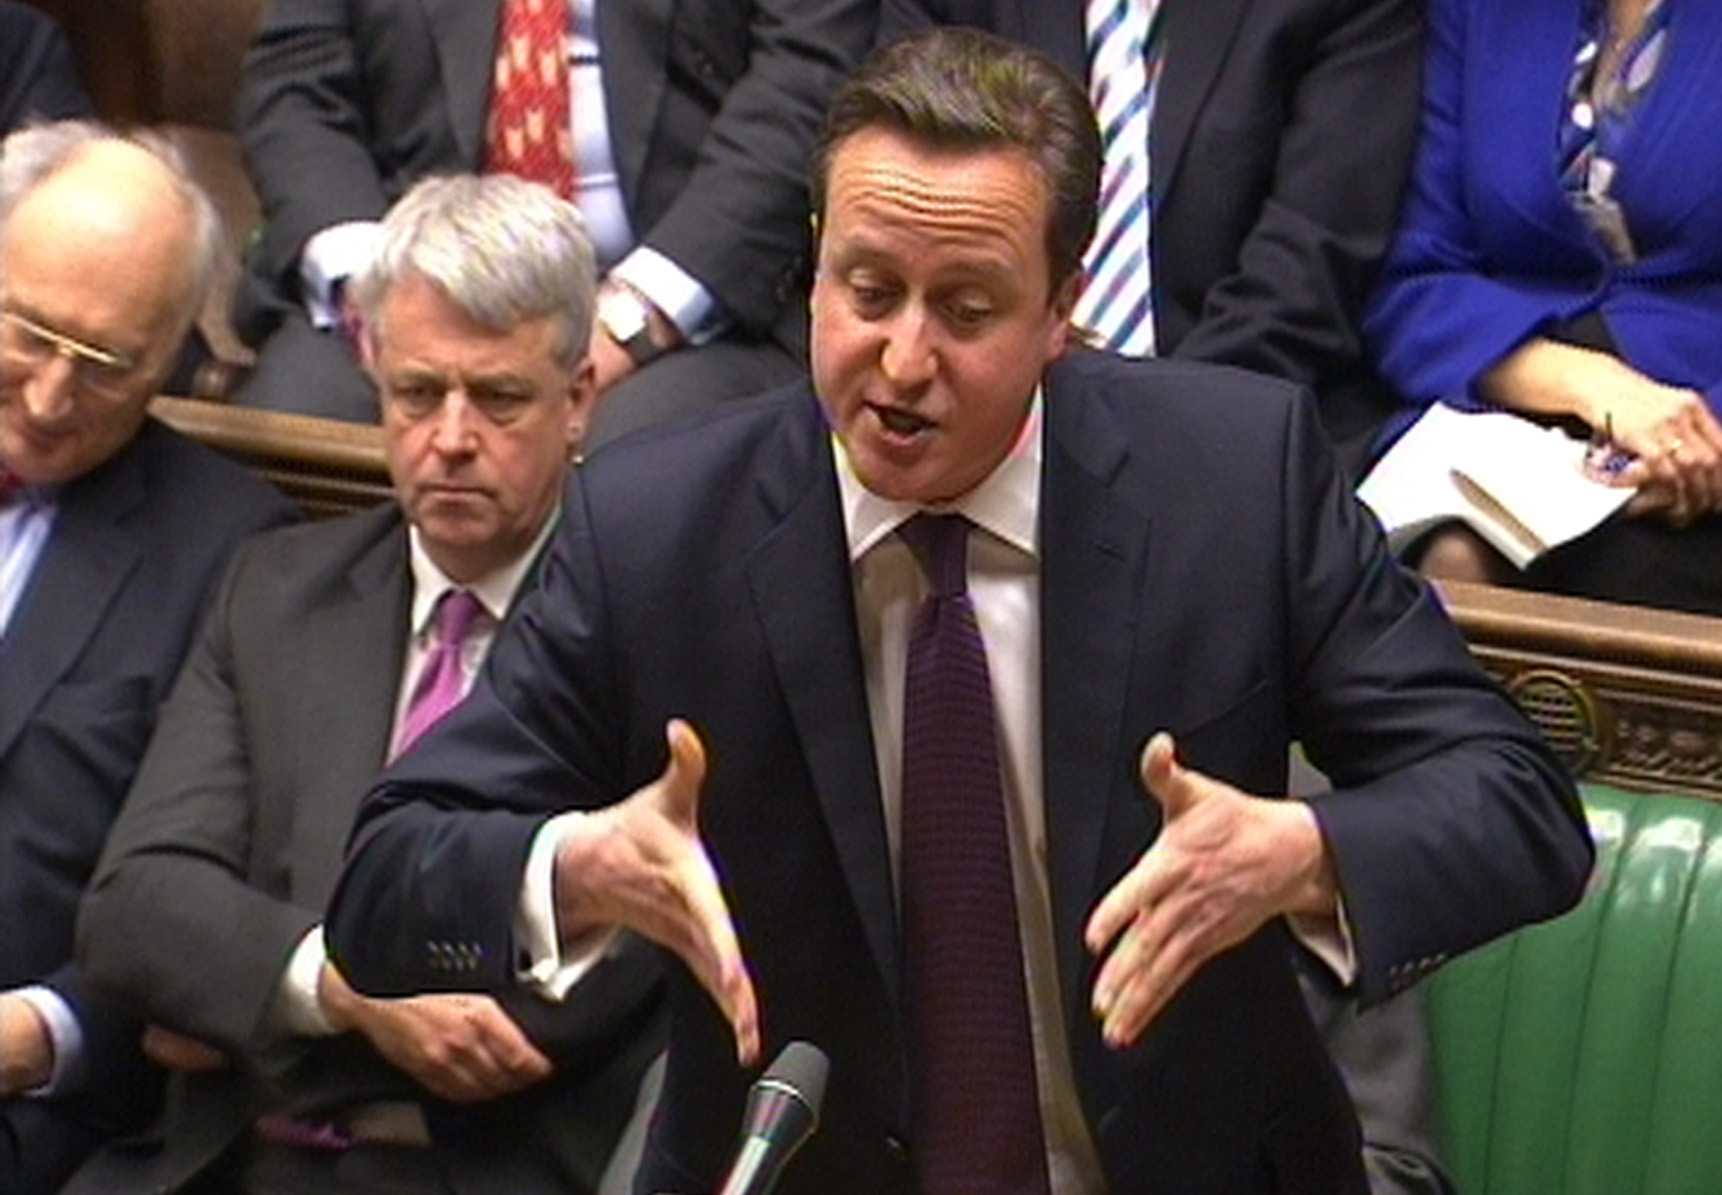 Prime Minister's Questions, David Cameron